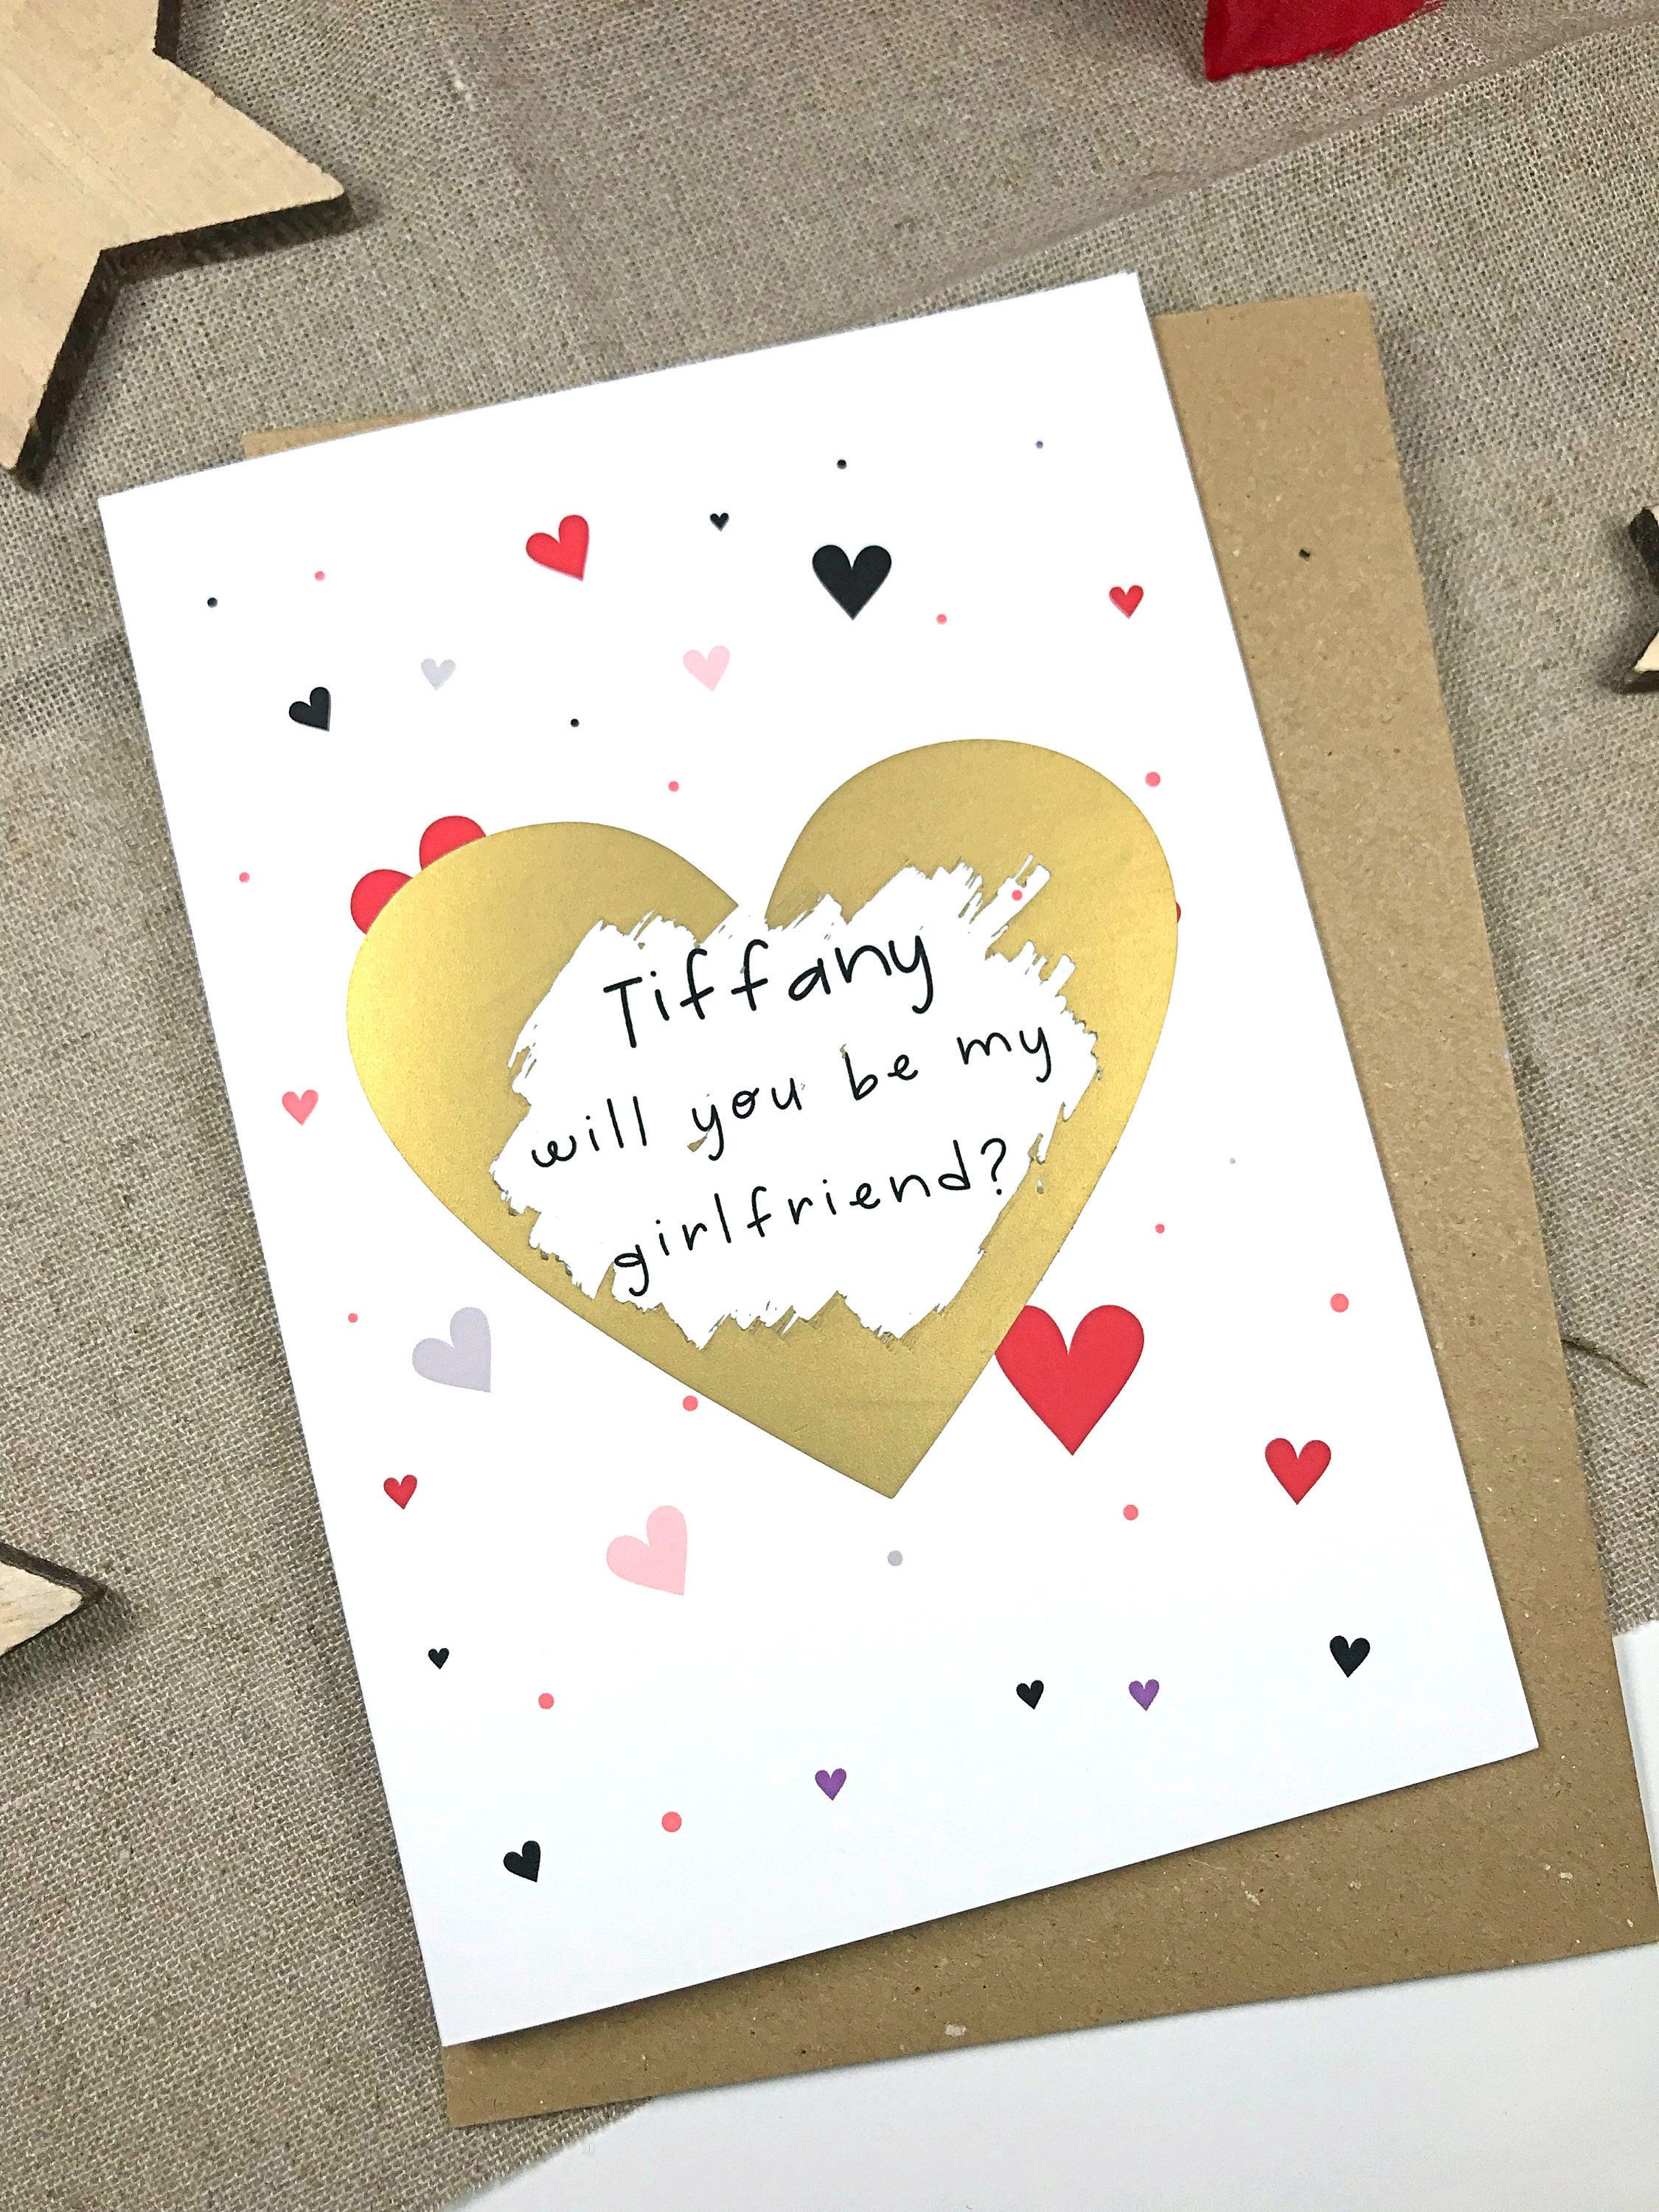 Will You Be My Girlfriend Card Proposal Card Be My Etsy Girlfriend Card Will You Be My Girlfriend Me As A Girlfriend